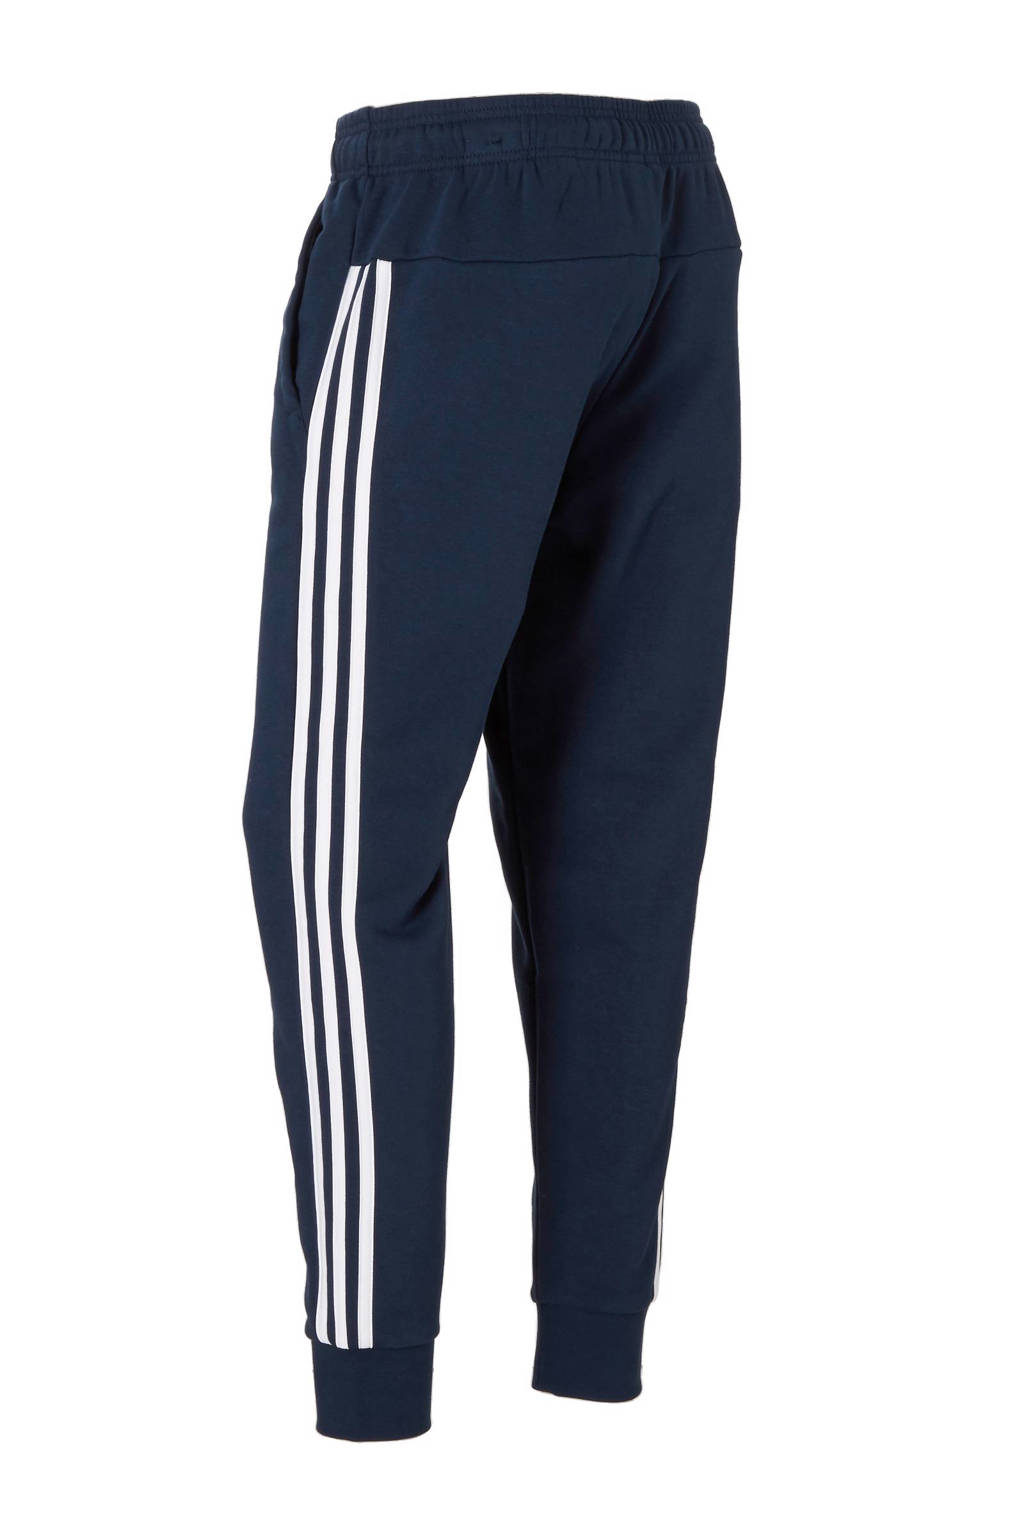 Blauwe Joggingbroek Dames.Adidas Performance Joggingbroek Wehkamp